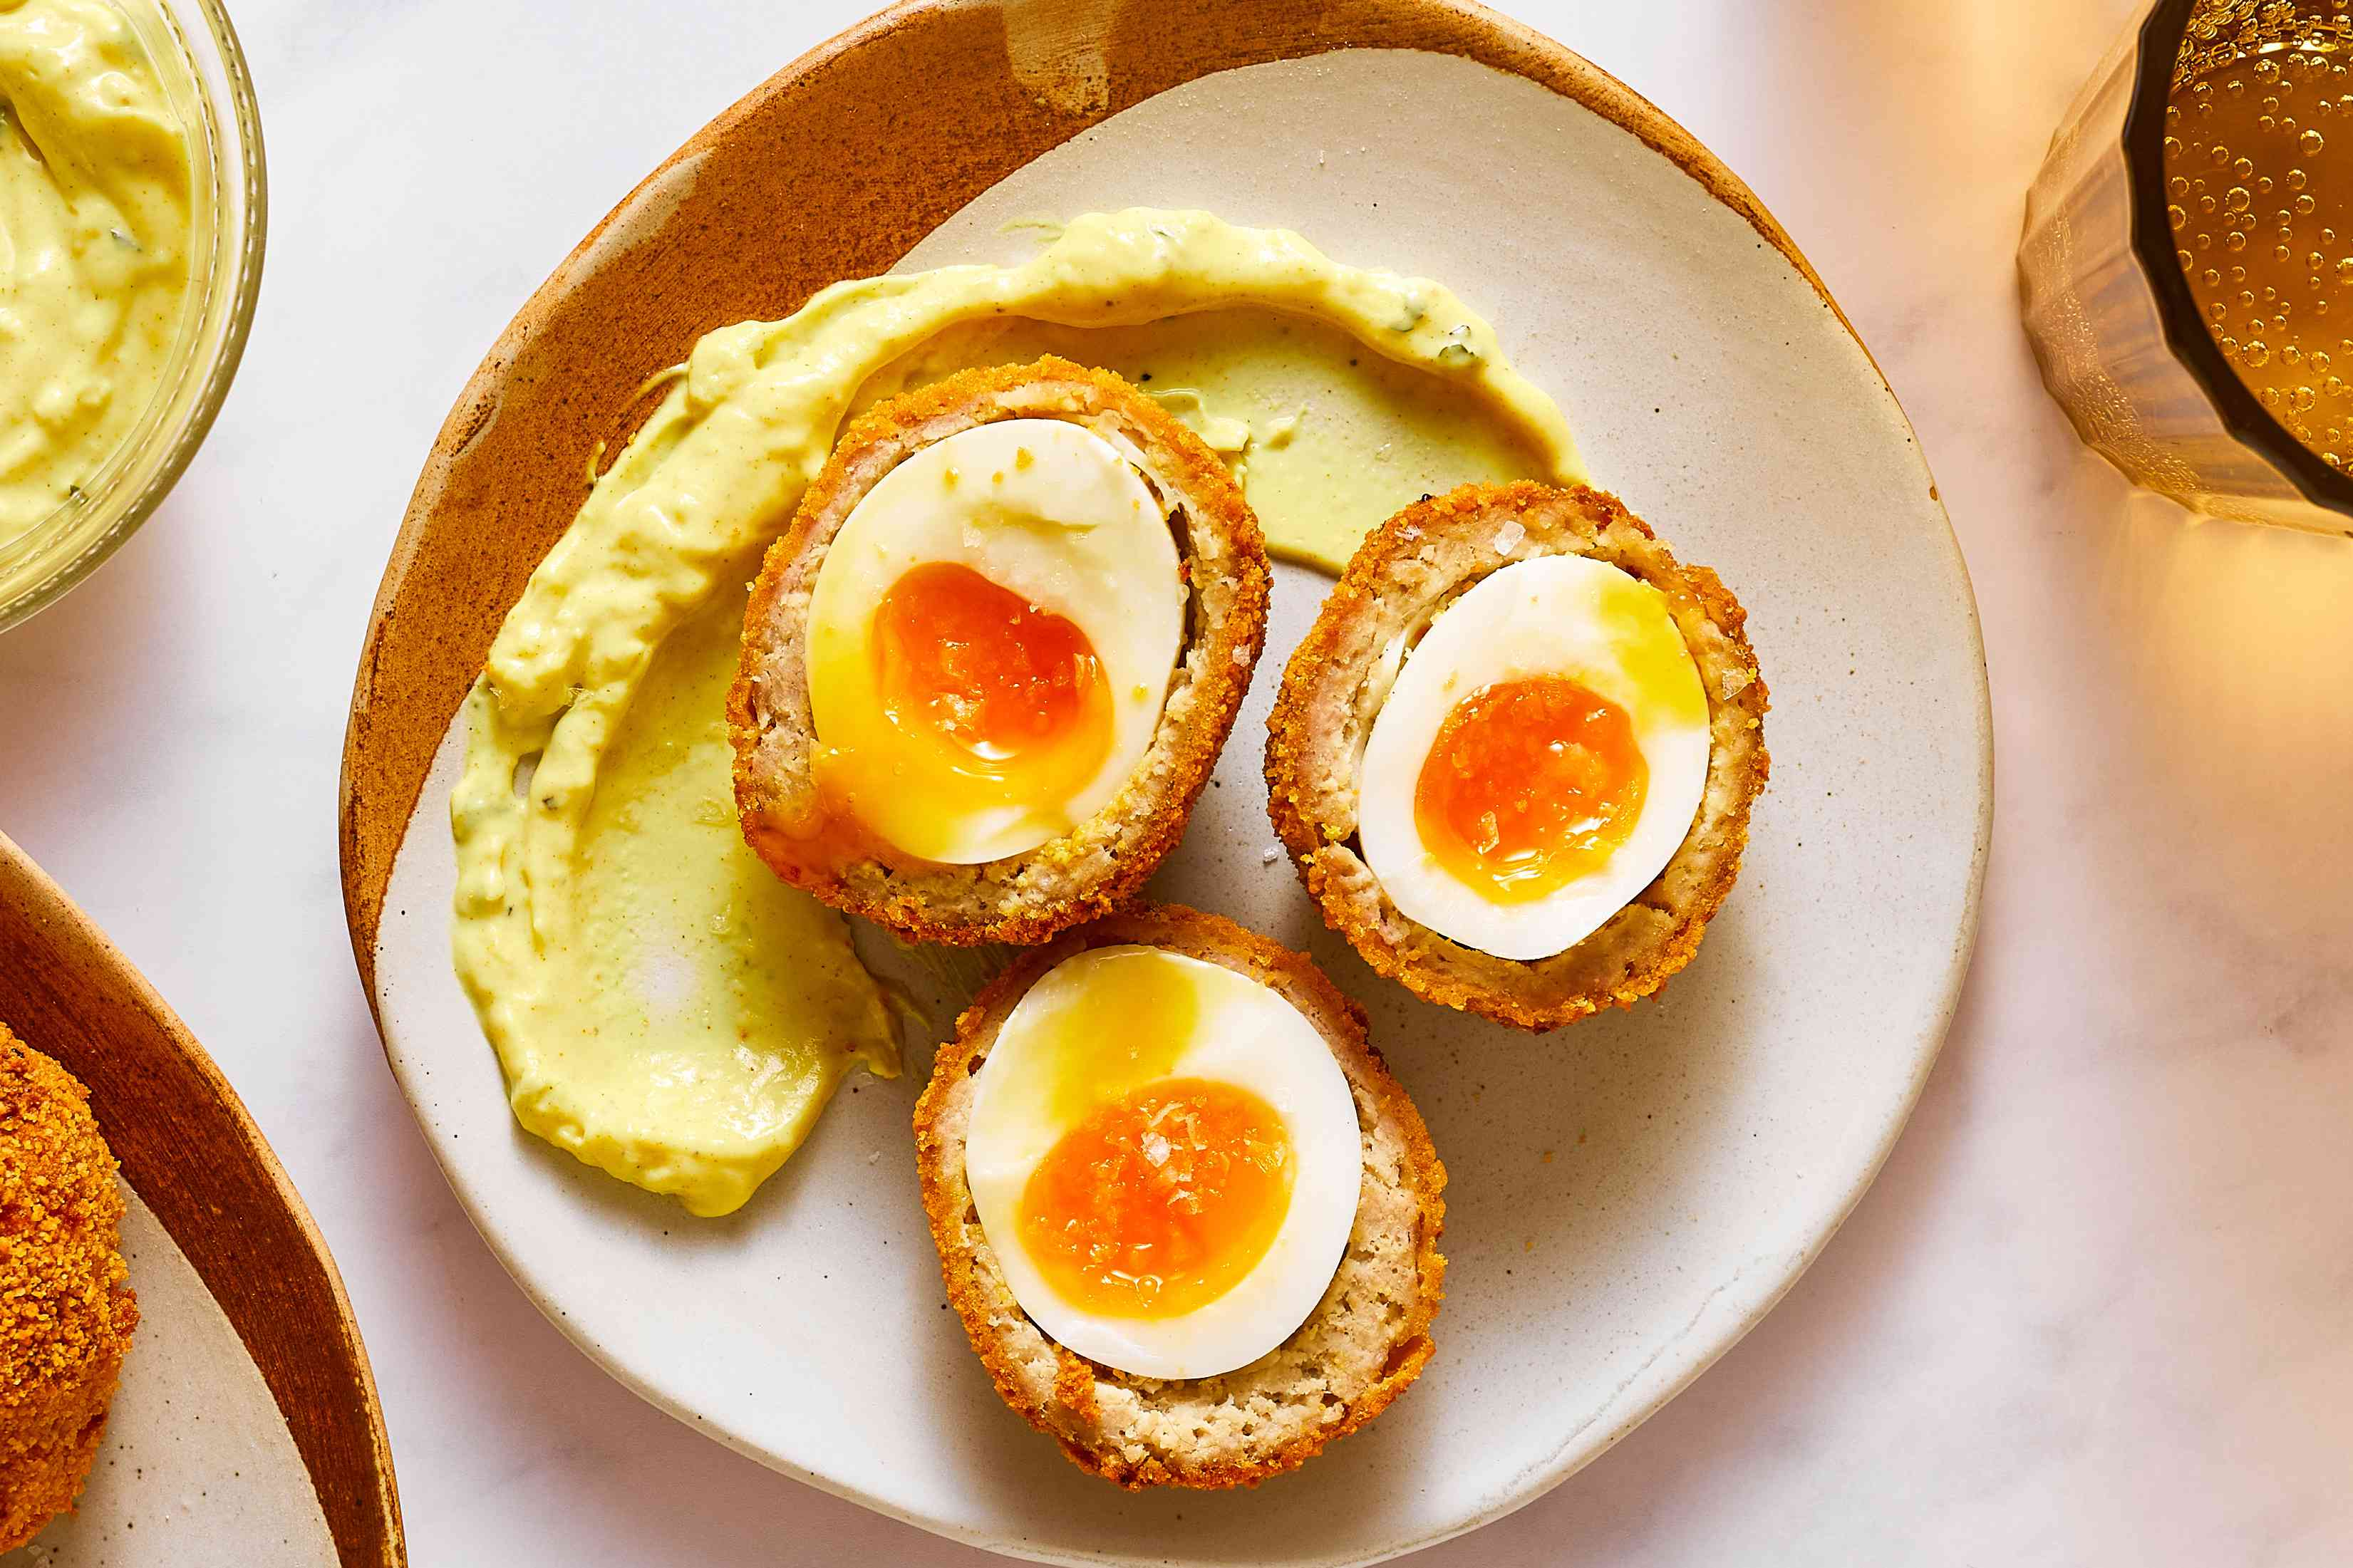 cooked scotch eggs on a plate